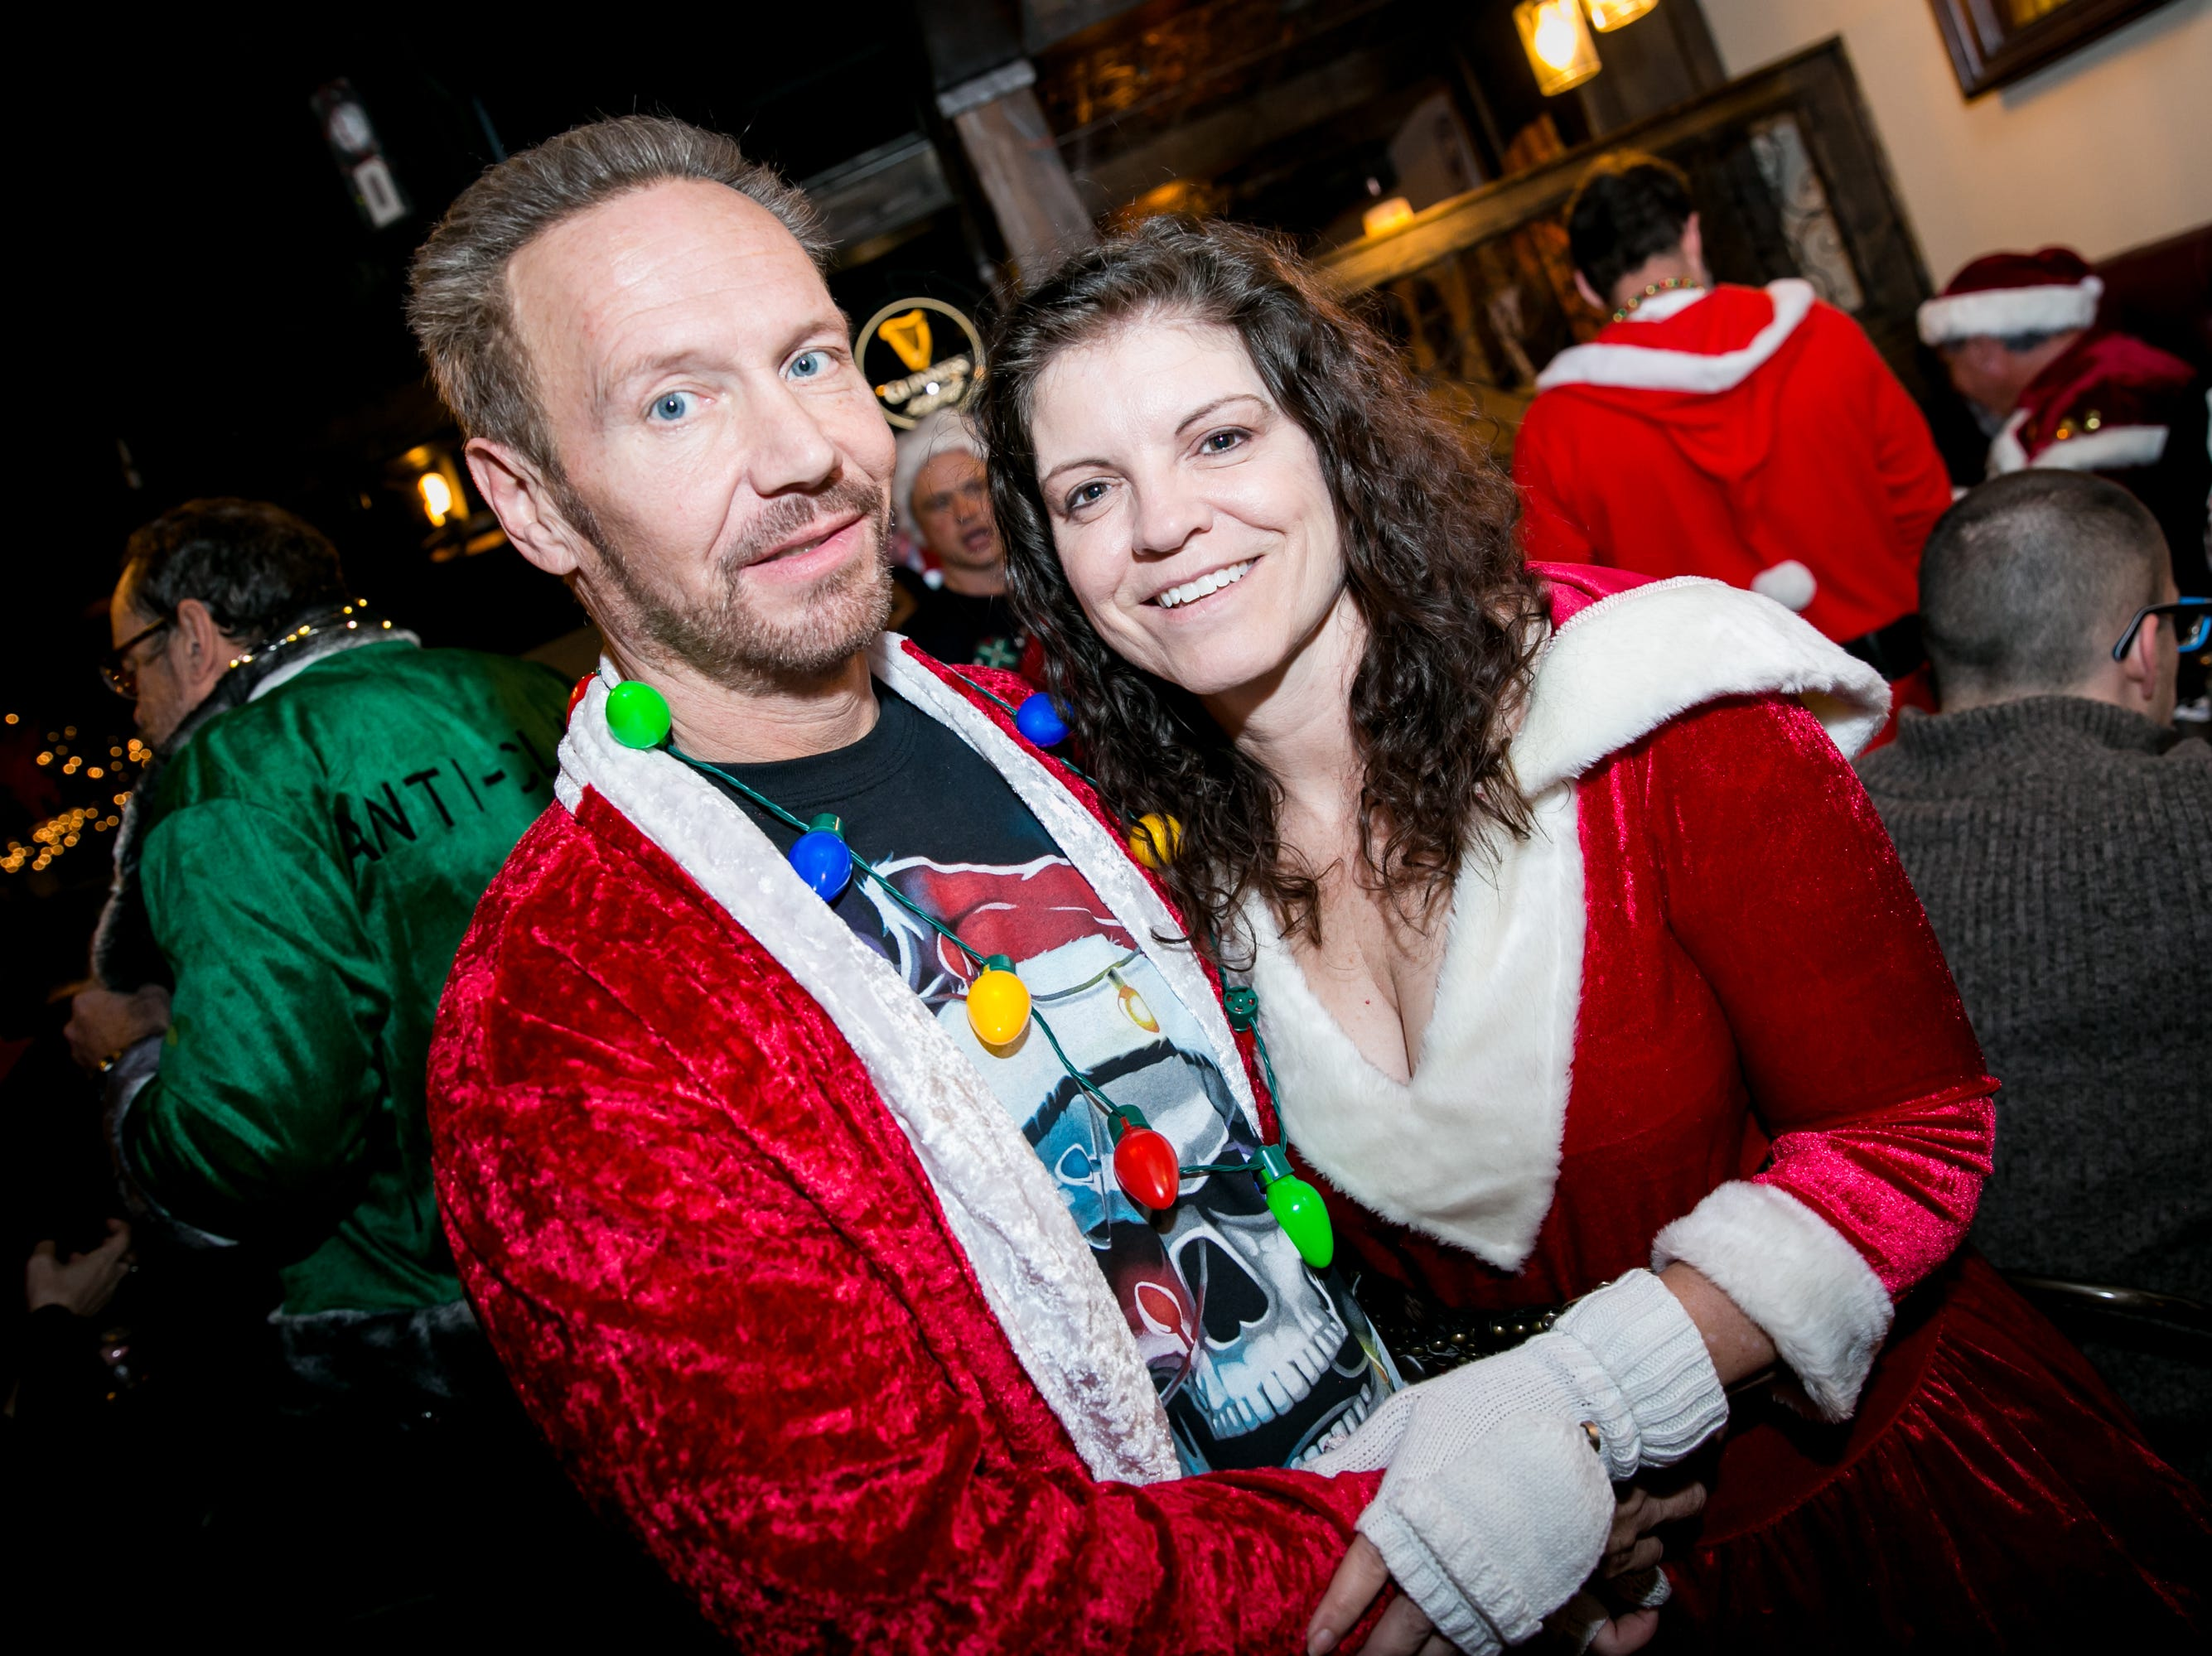 This duo celebrated the 12 days of Christmas at The Kettle Black during Santarchy on Saturday, December 8, 2018.